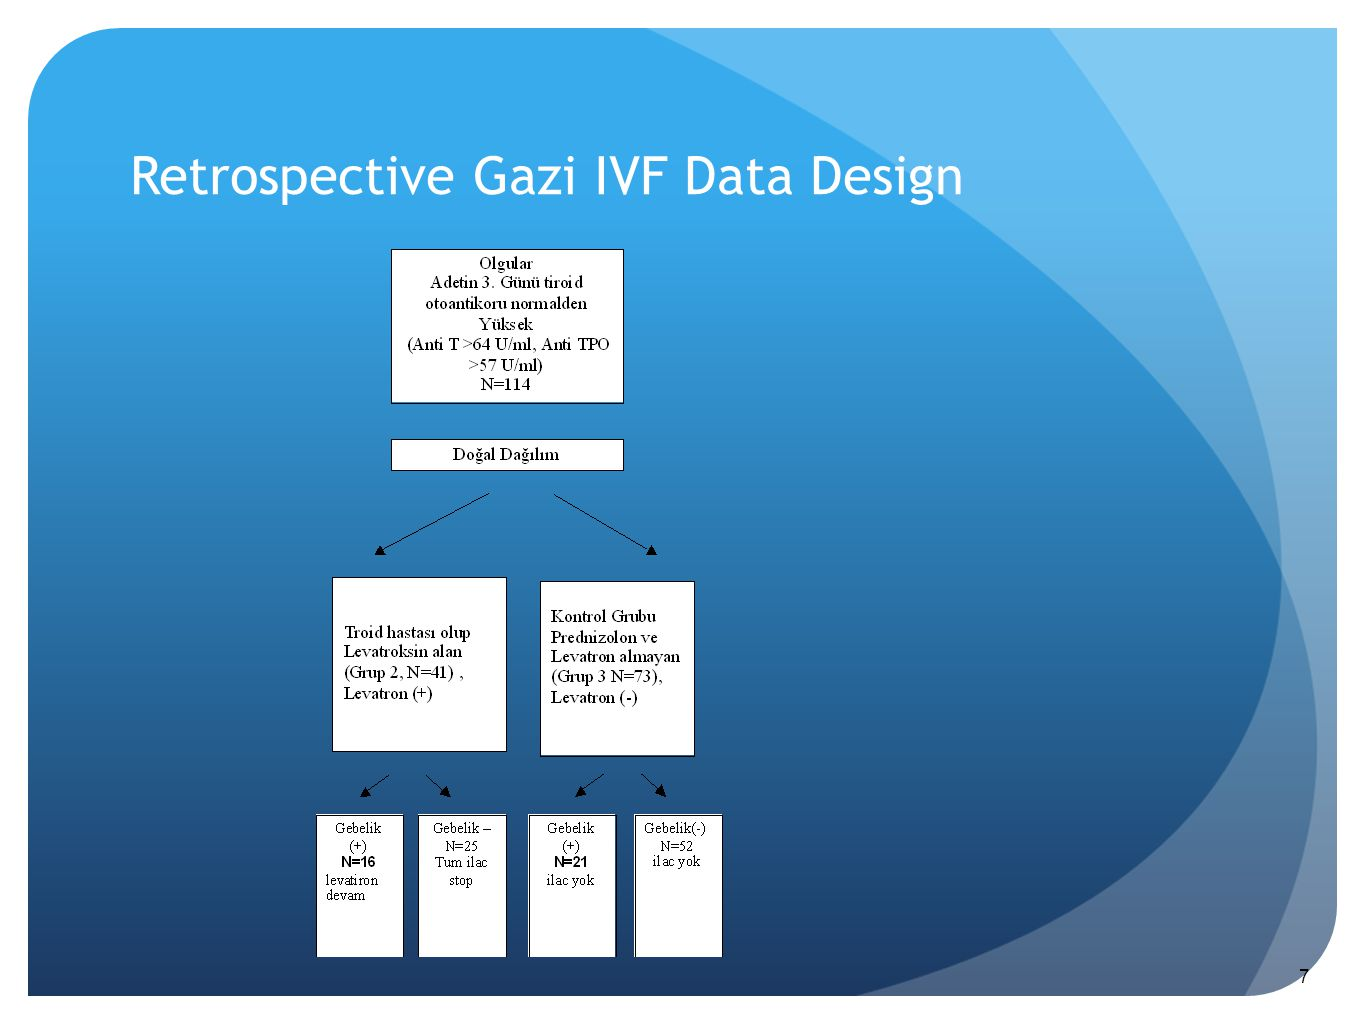 Retrospective Gazi IVF Data Design